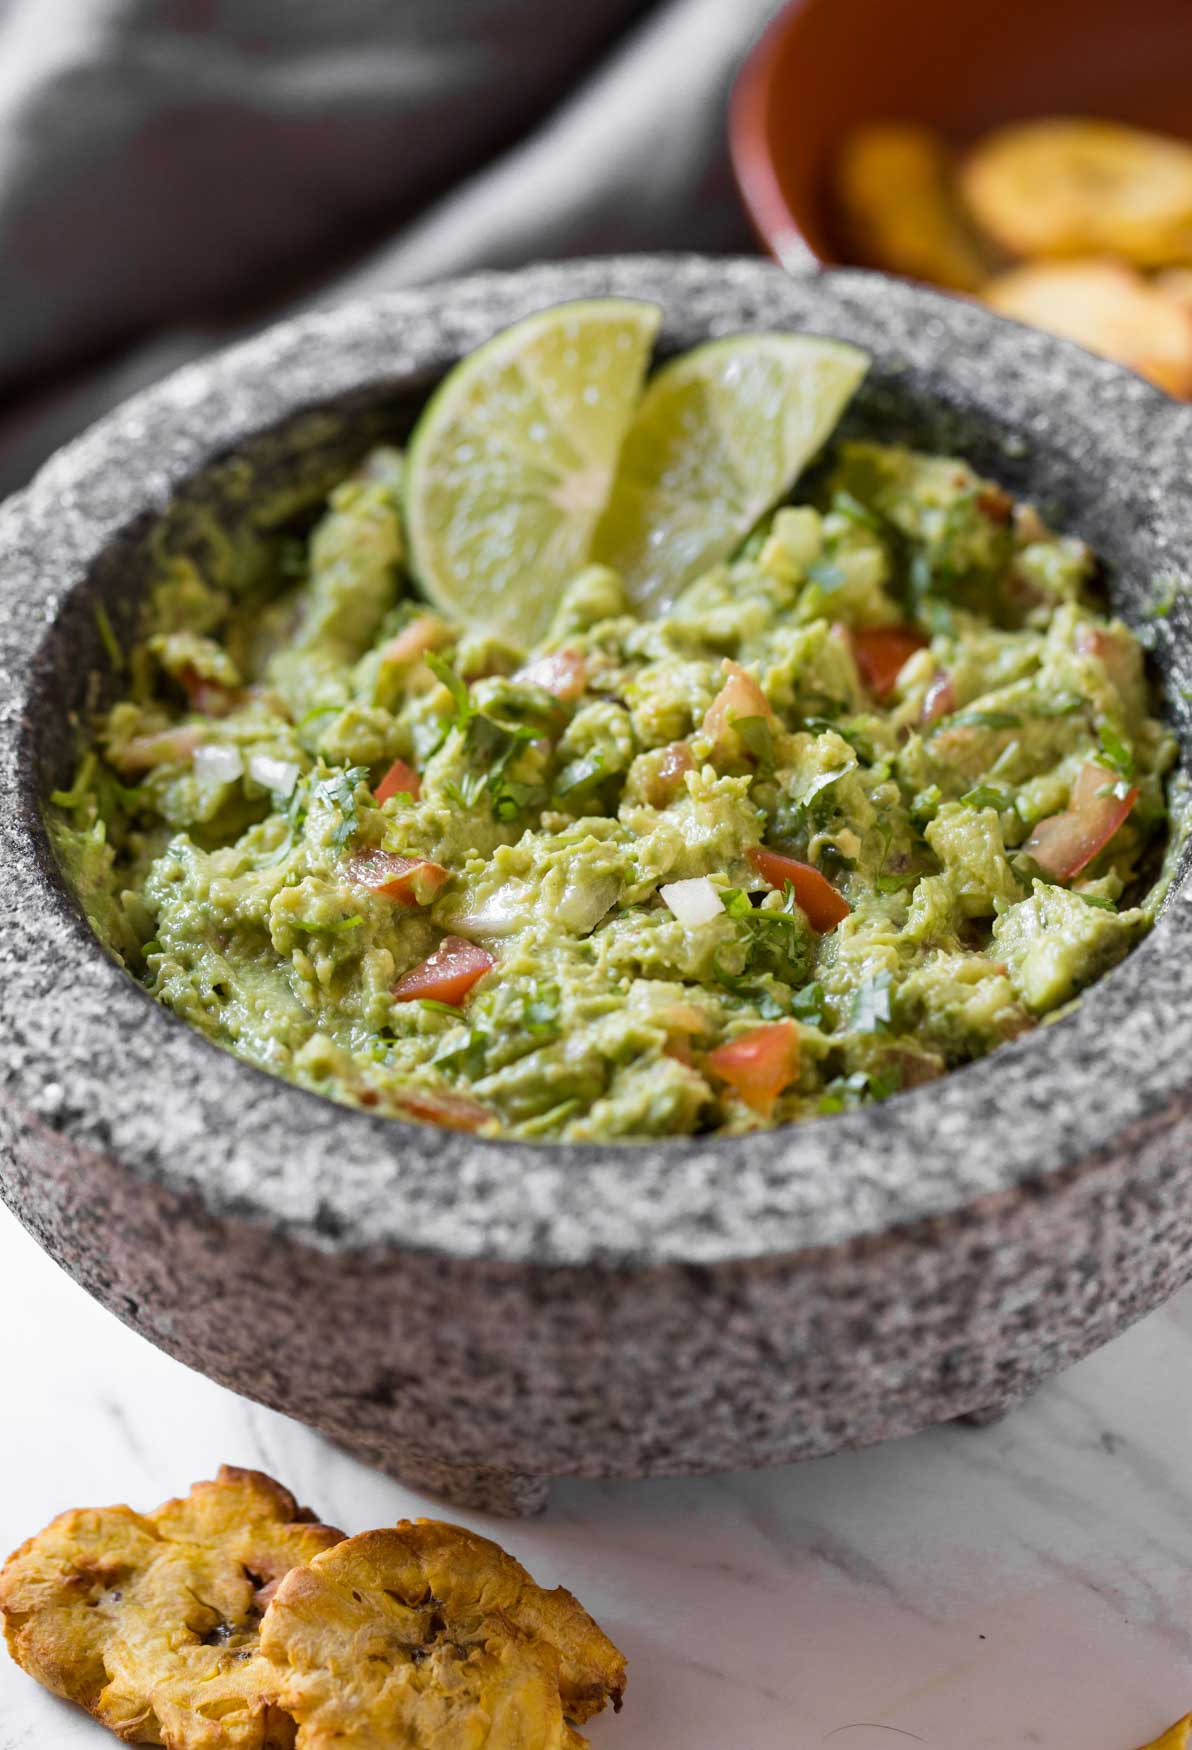 Simple Healthy Guacamole Recipe -- Chunky avocado pulp mixed with fresh chopped tomatoes and onion. Lime juice, fresh cilantro, and seasonings make it even more flavourful.